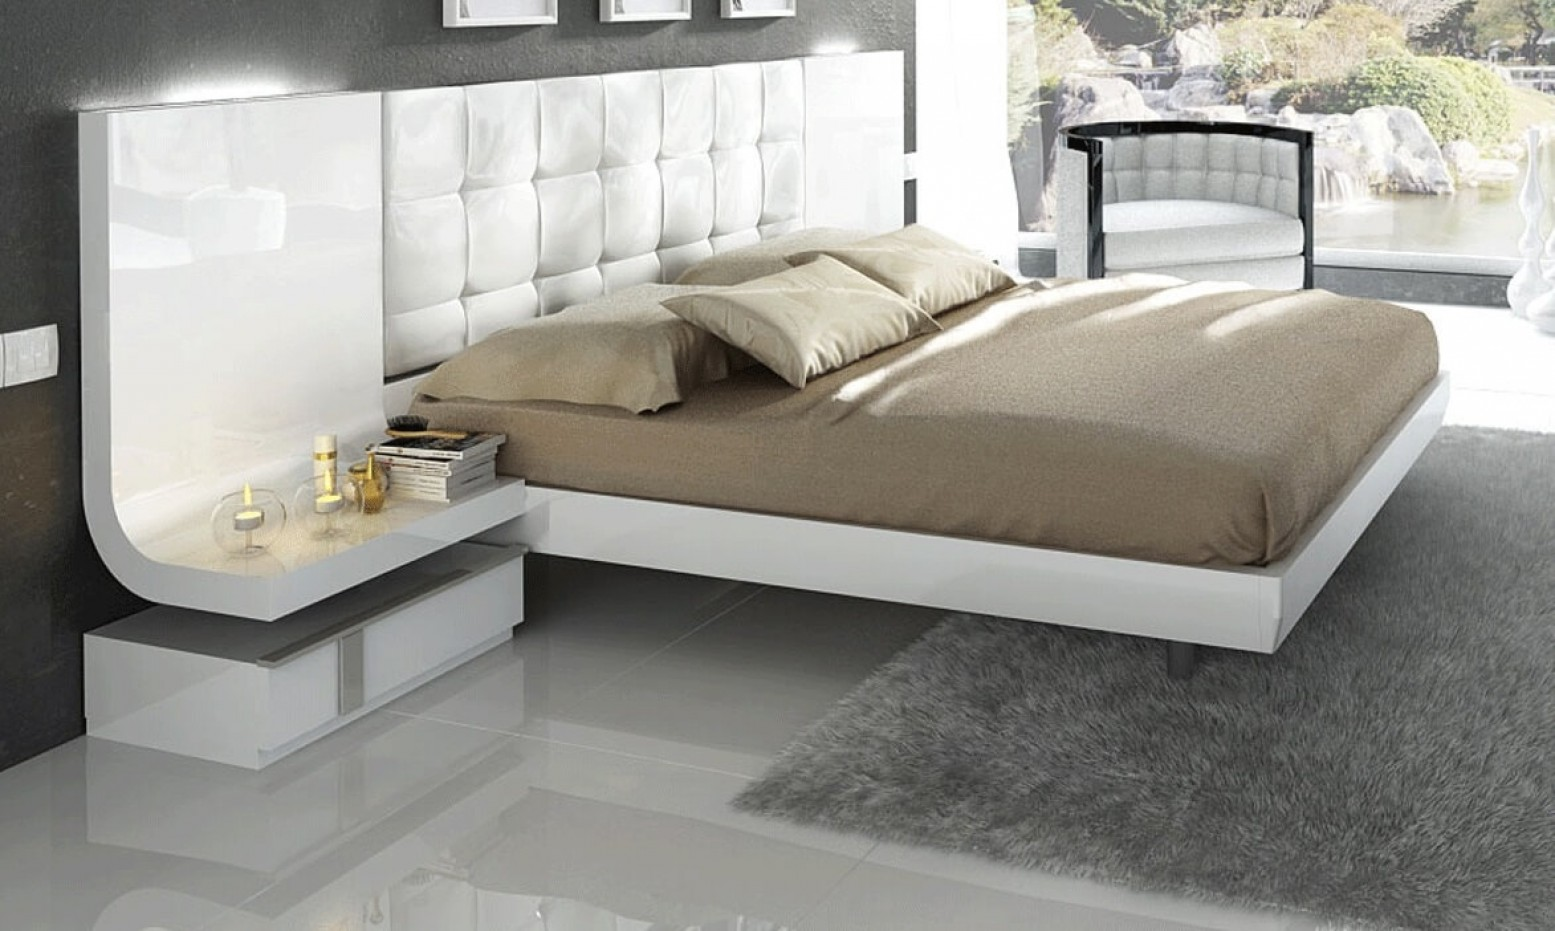 Granada Wood Tufted Storage Bed W Lights Queen Size By Fenicia Mobiliario Spain Sohomod Com